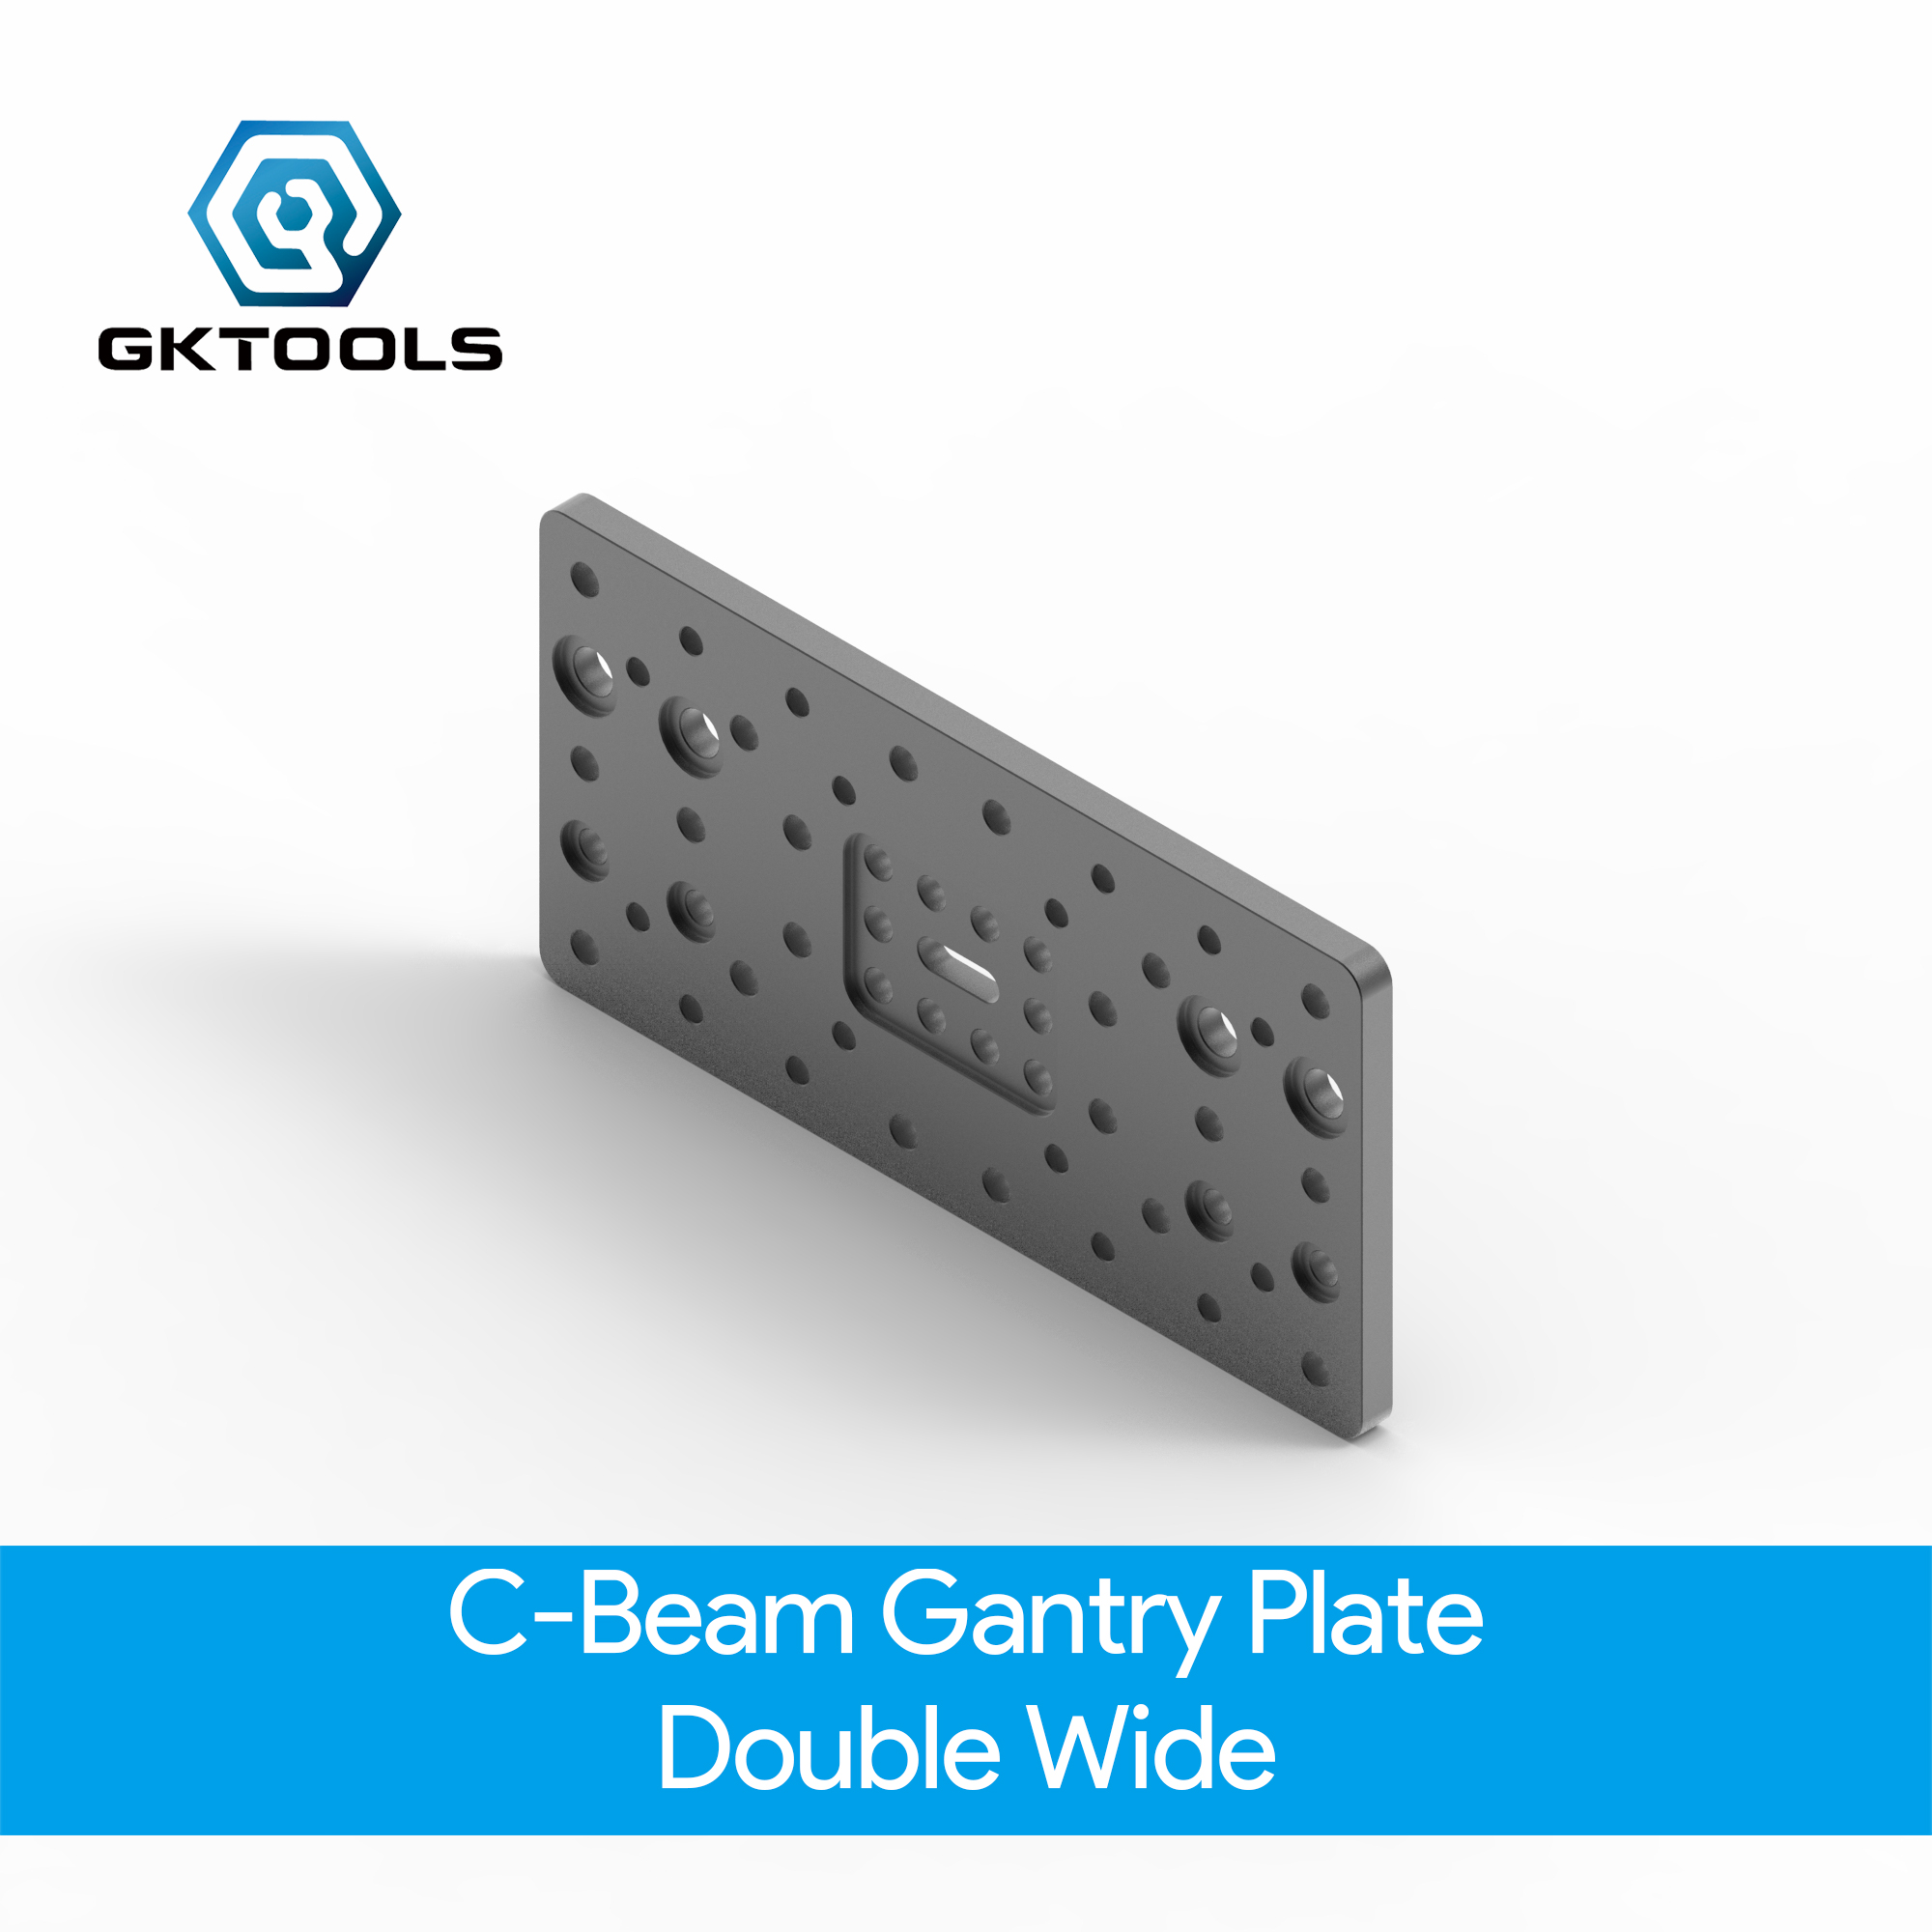 OpenBuilds C-Beam Gantry Plate - Double Wide